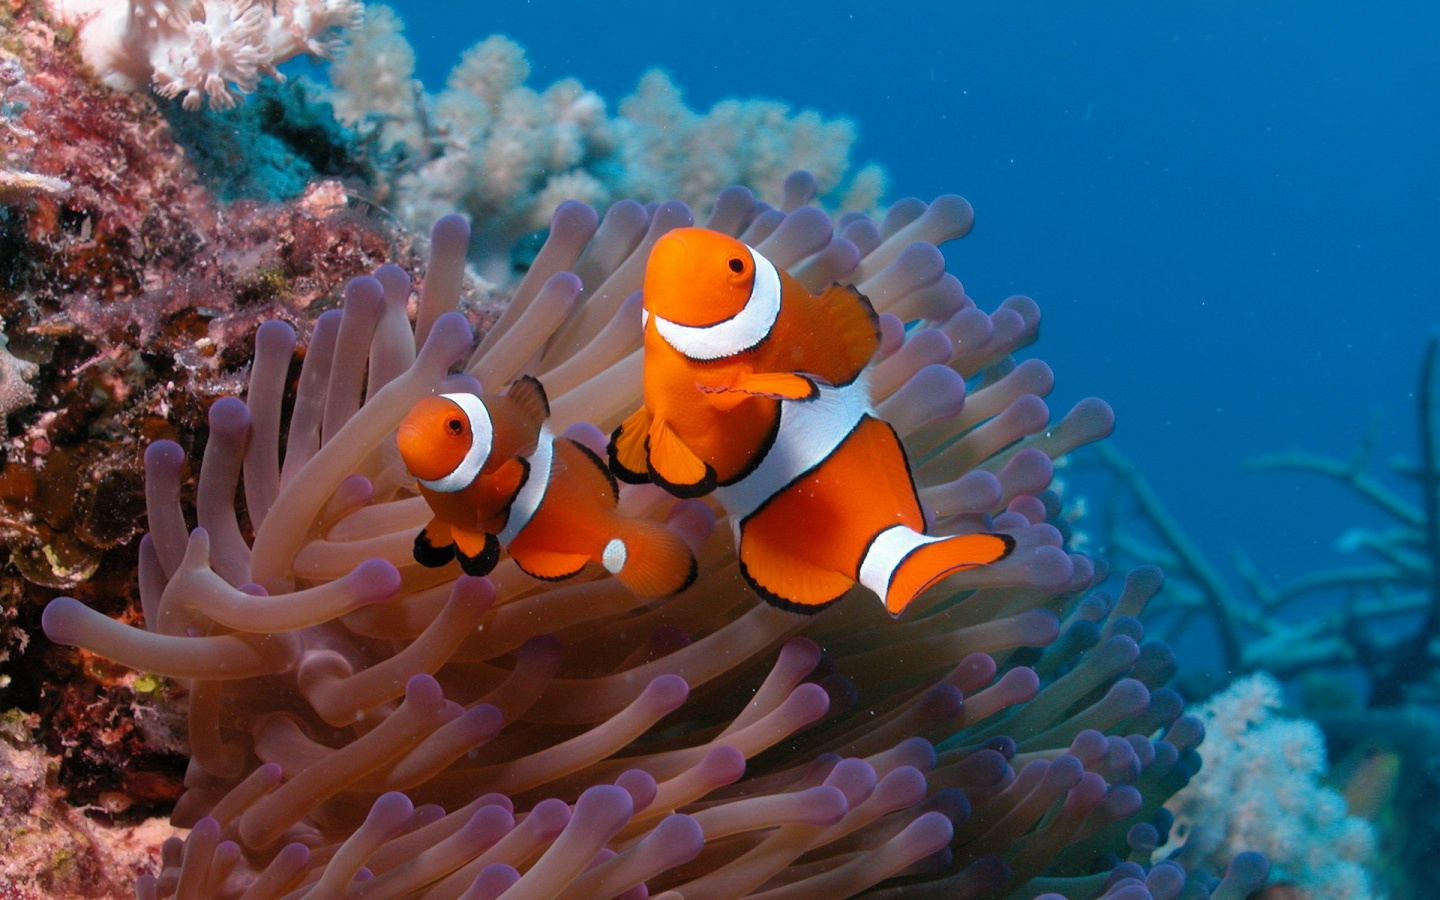 Wallpapers 4u 11 04 11 for All the fish